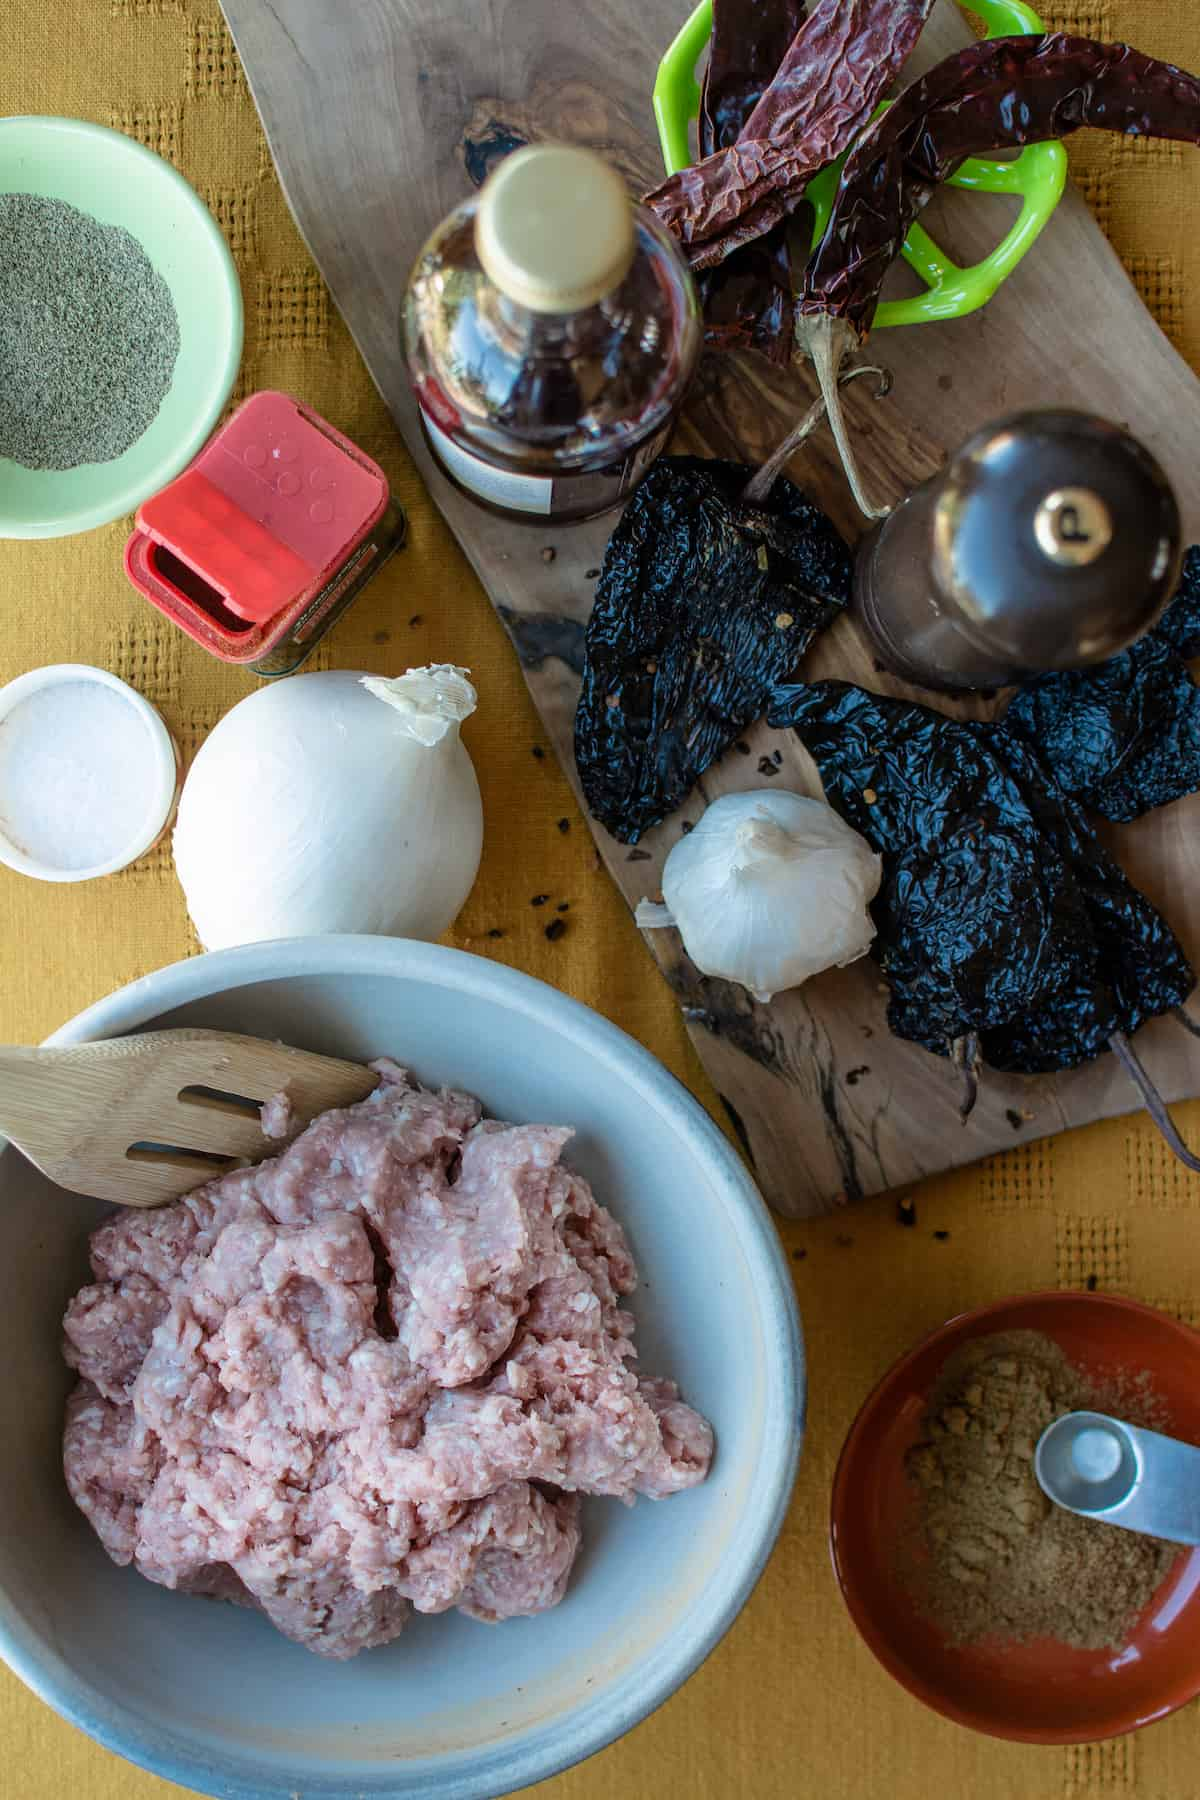 Ingredients to make chorizo on a table with a yellow tablecloth. Ground pork in a bowl alongside an onion, dried chiles, and spices.